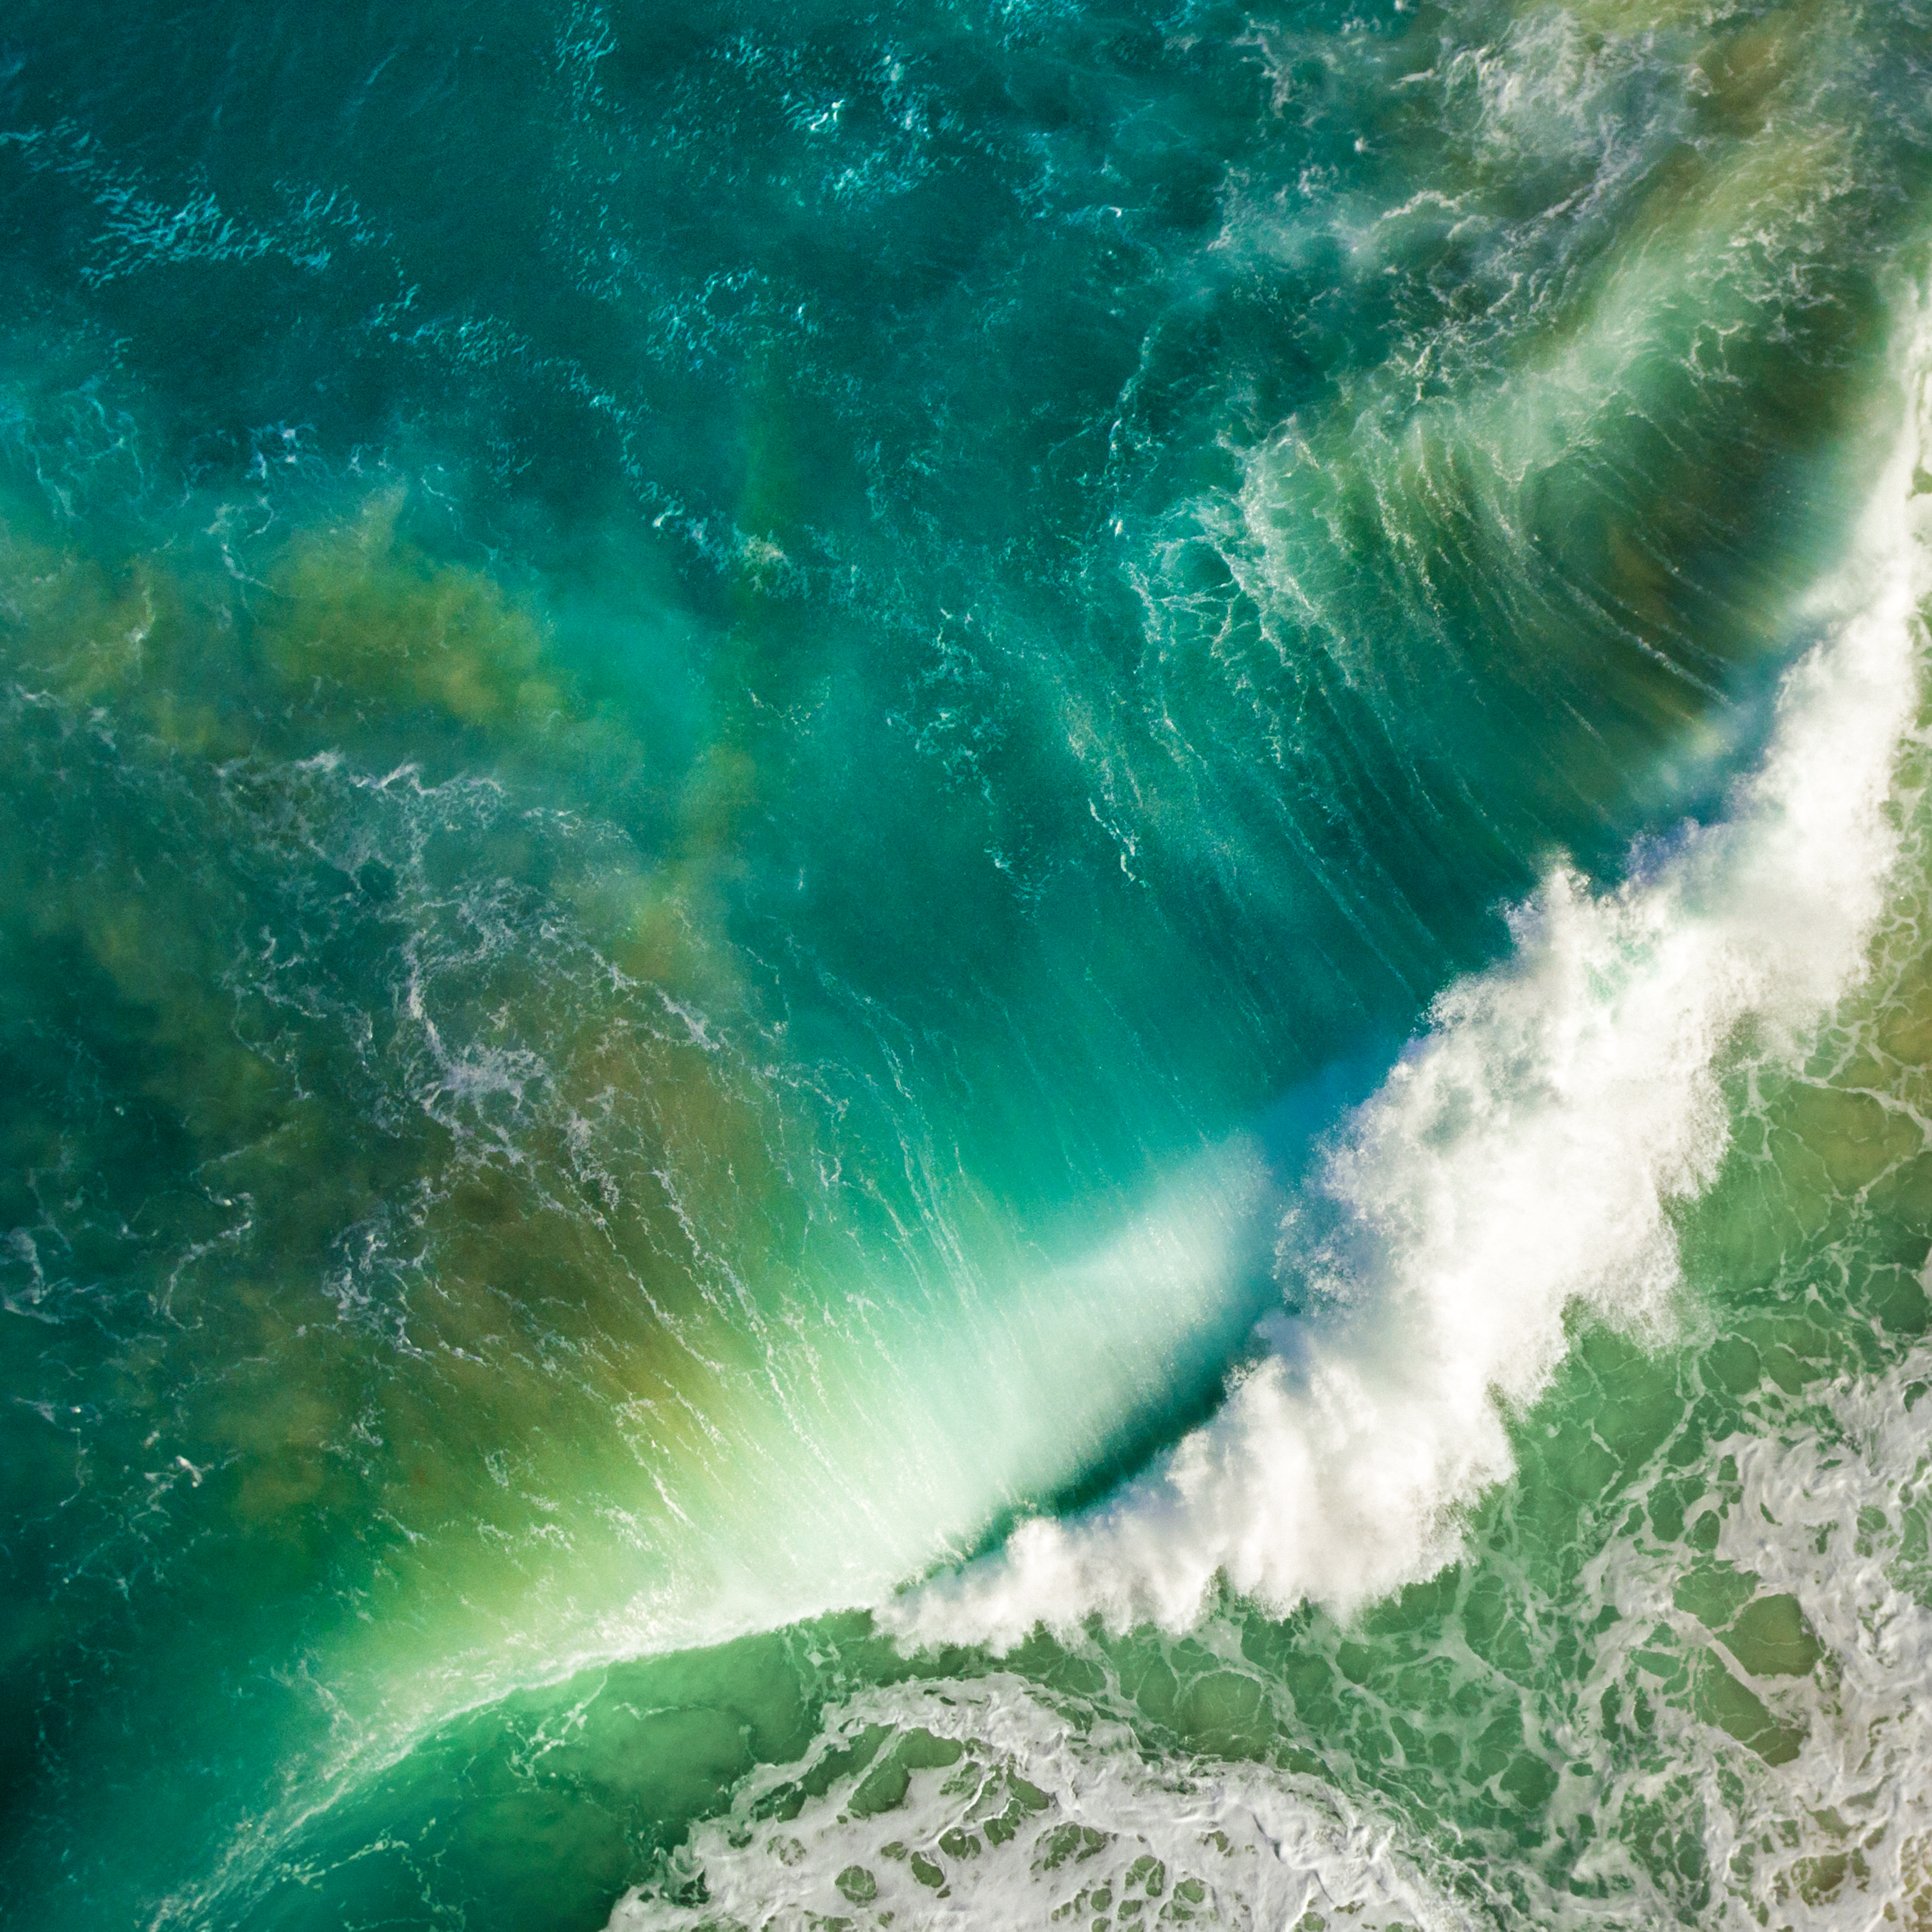 Download the Real iOS 10 Wallpaper for iPhone   iClarified 2706x2706